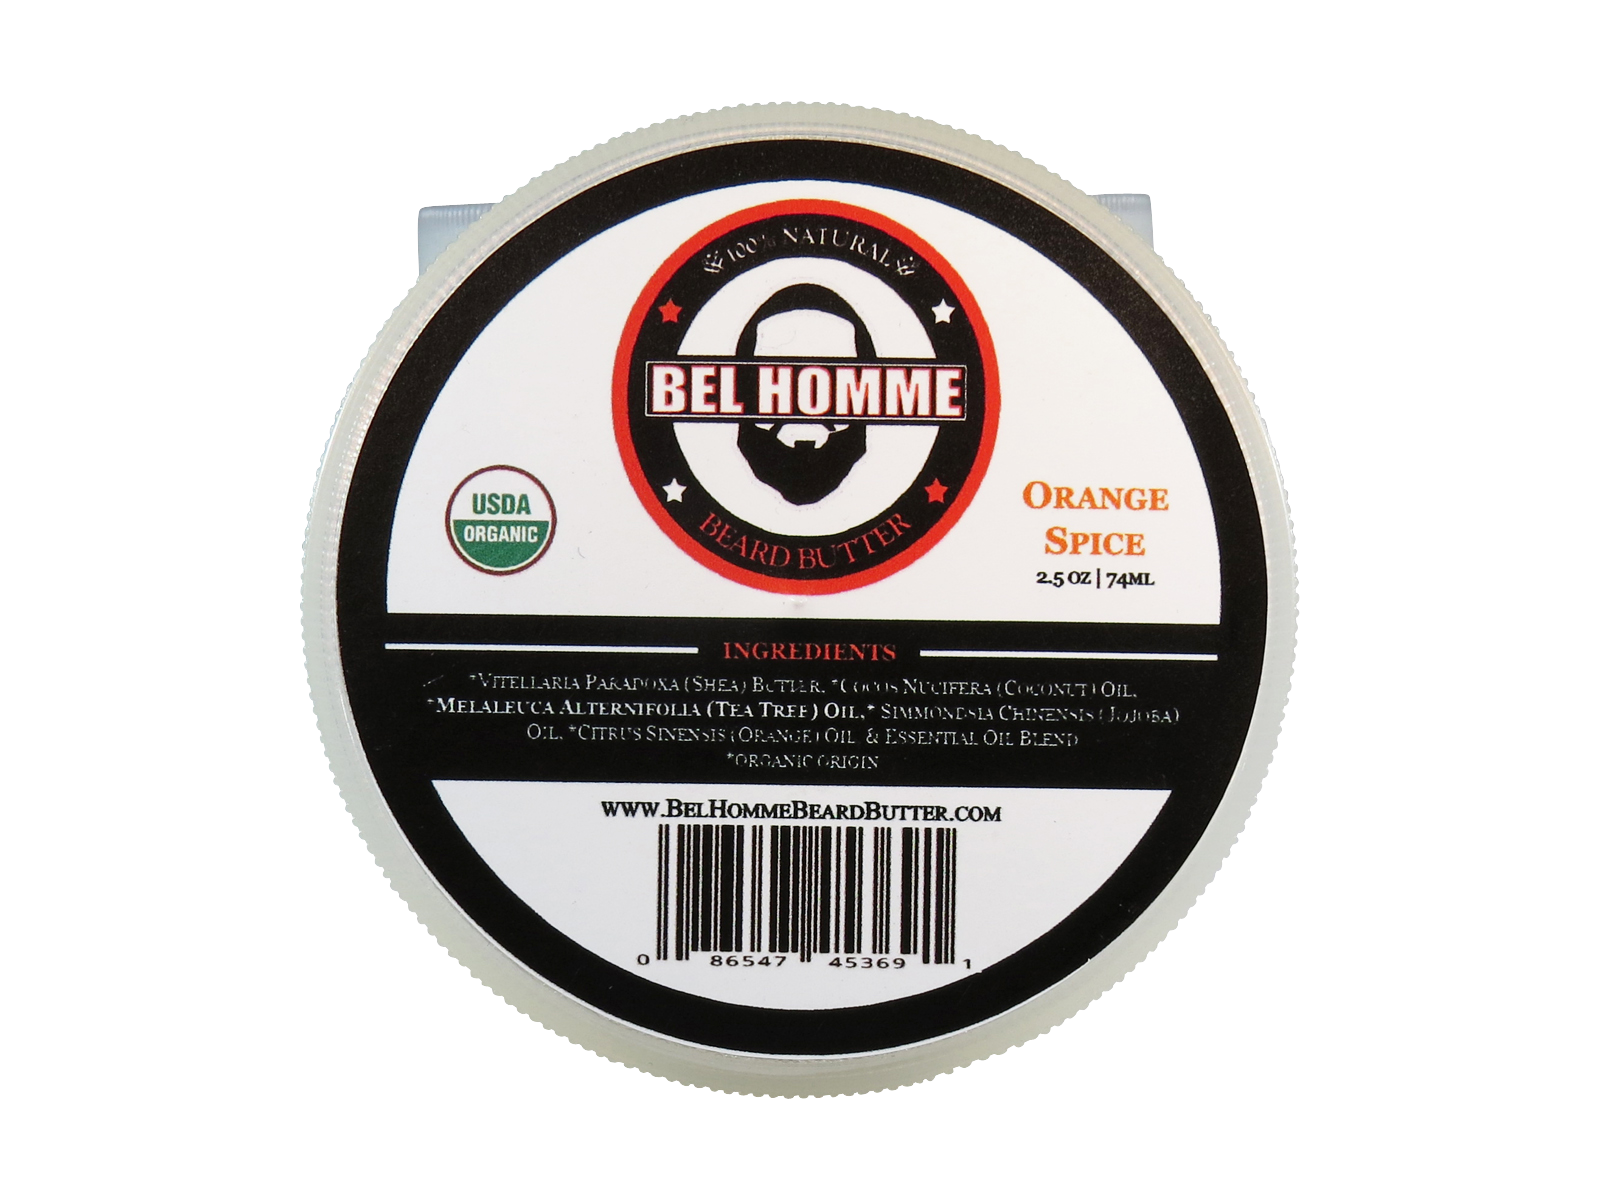 Orange Spice - Bel Homme Beard Butter Company